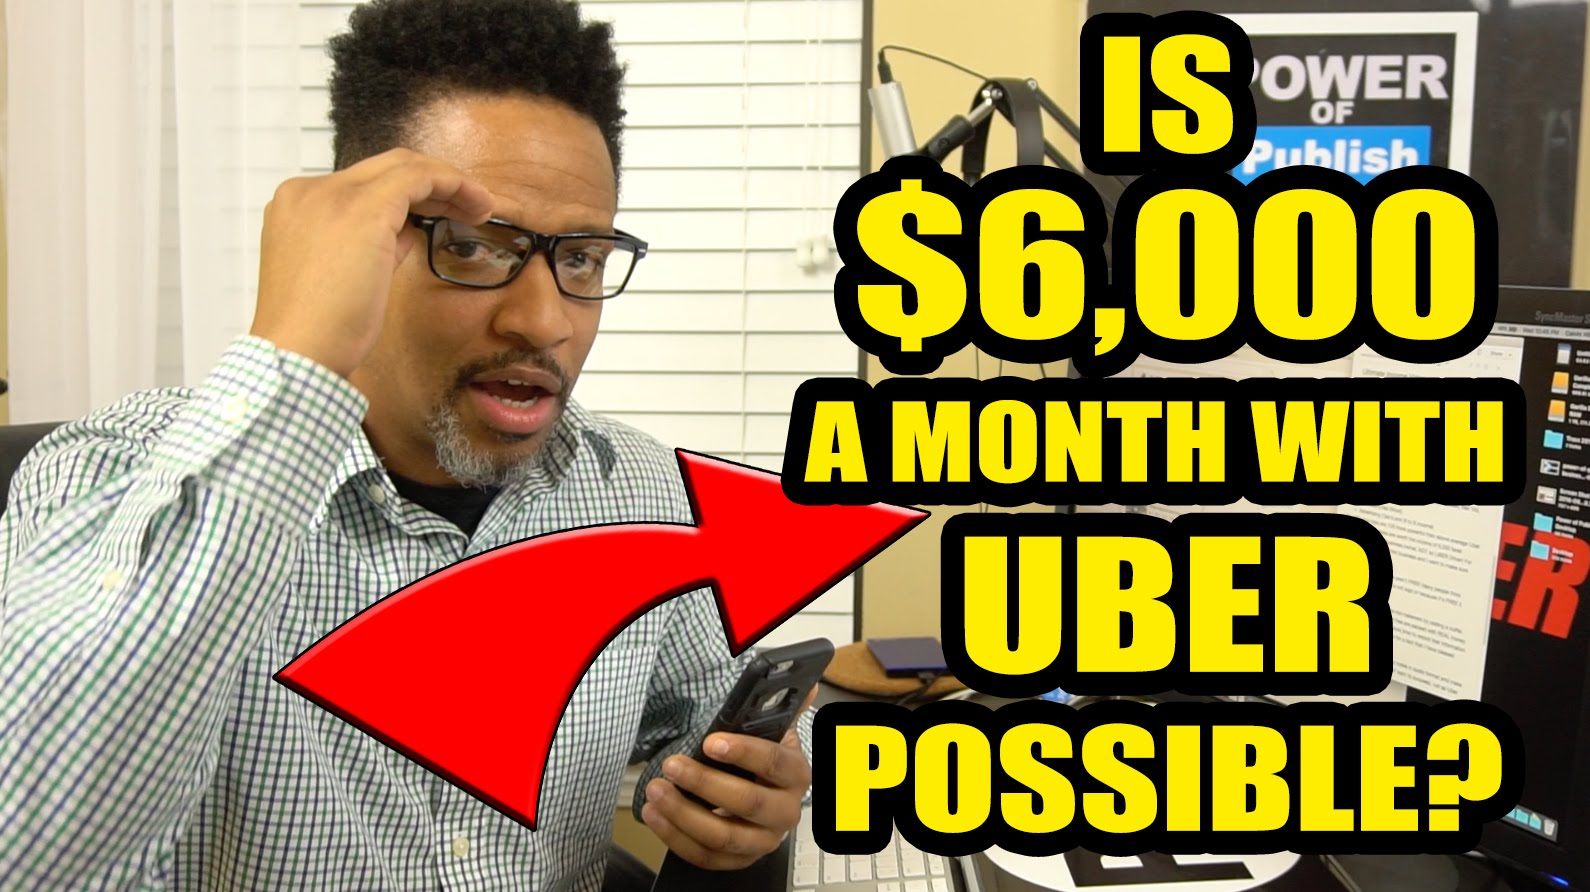 Over $5,000 A Month With Uber Referrals – 6 Things You Should Know